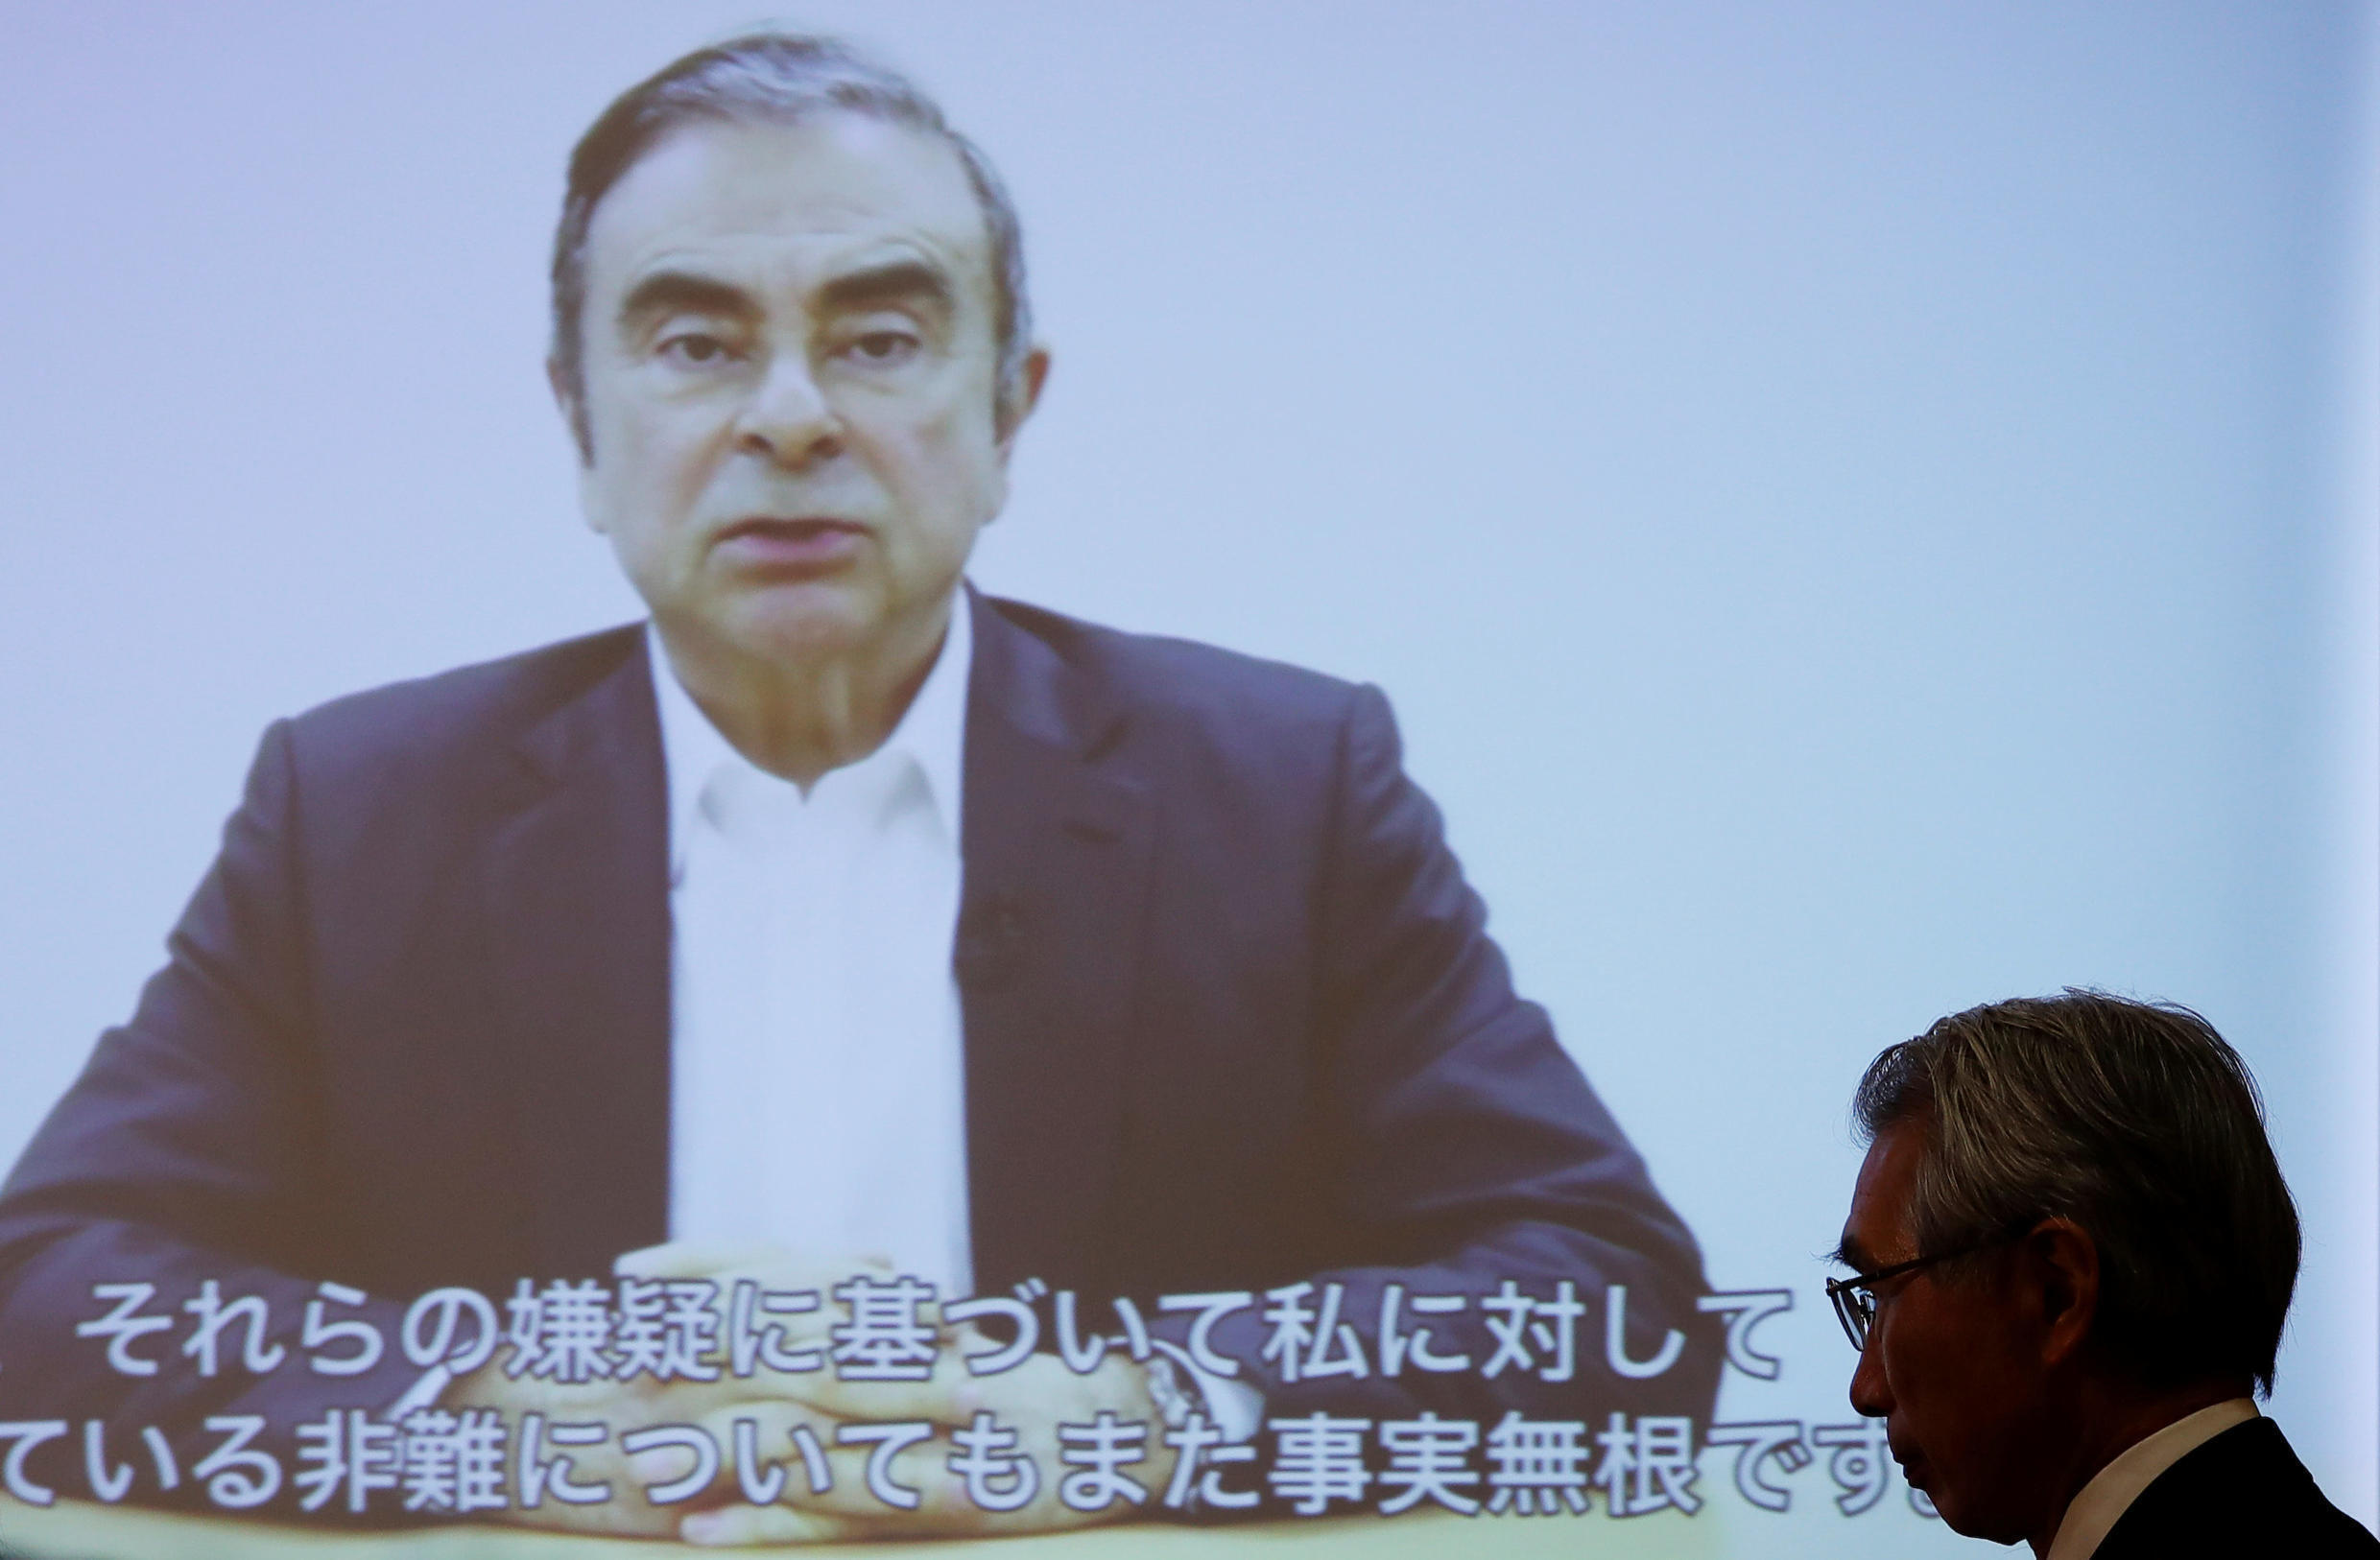 Former Renault-Nissan chairperson Carlos Ghosn, who holds French, Lebanese and Brazilian citizenship, in a video released by his Japanese lawyers in April 2019.